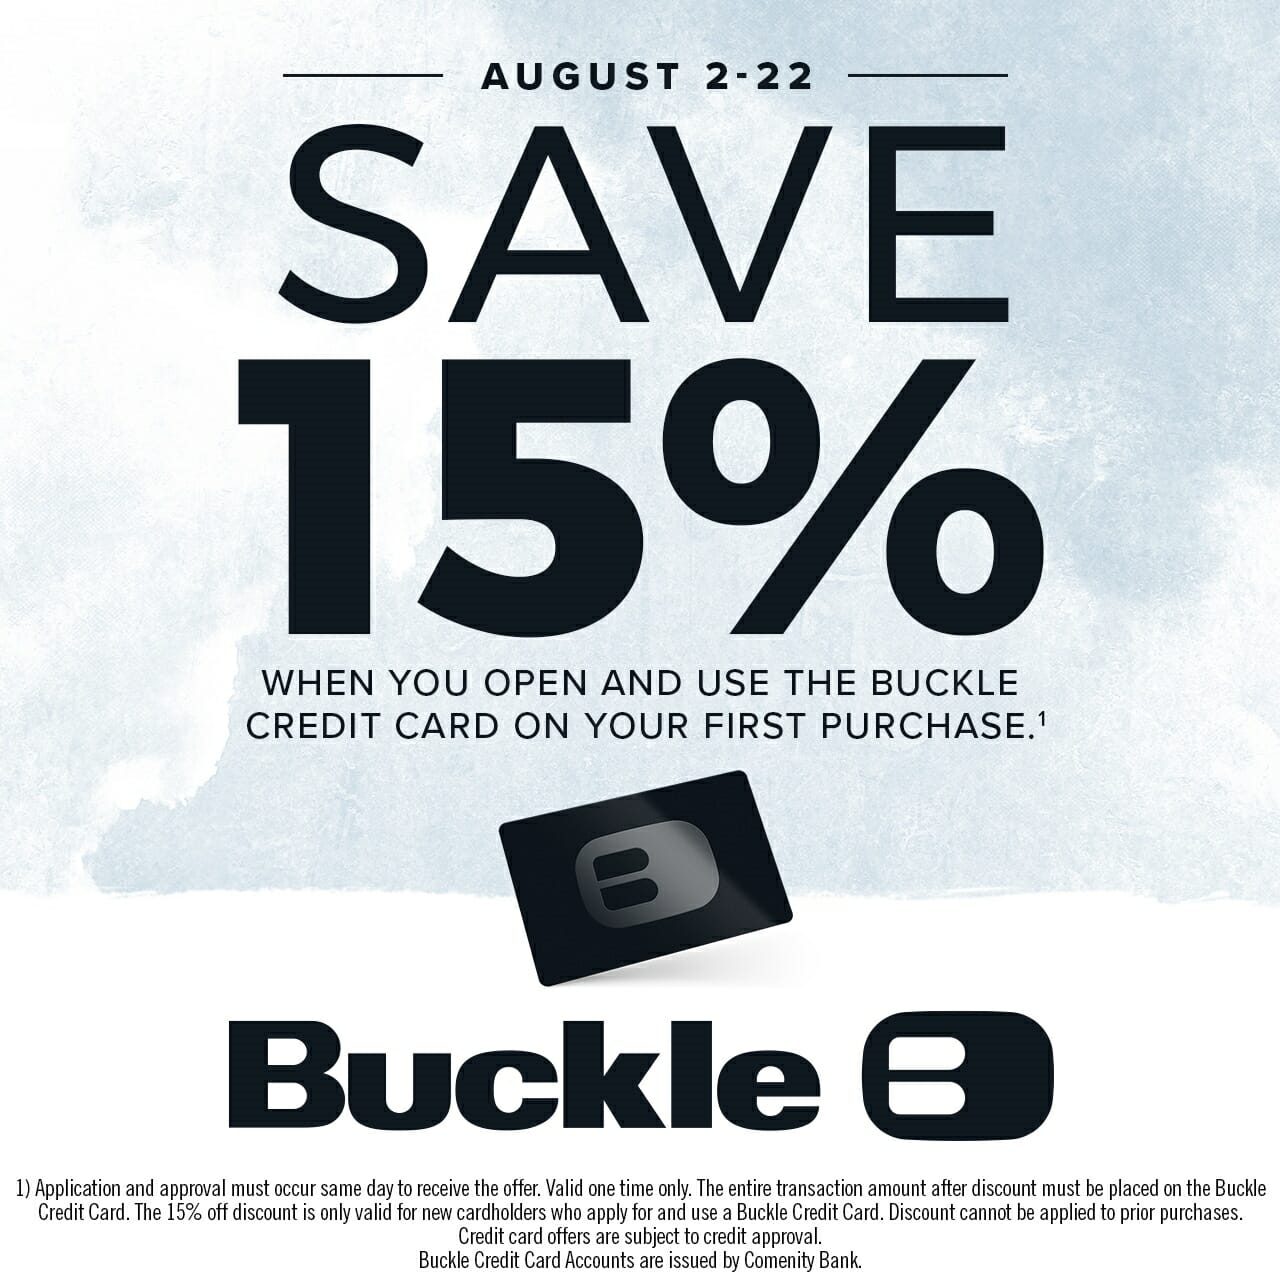 August 2-22 save 15% when you open and use the Buckle credit card on your first purchase. Terms and conditions apply.